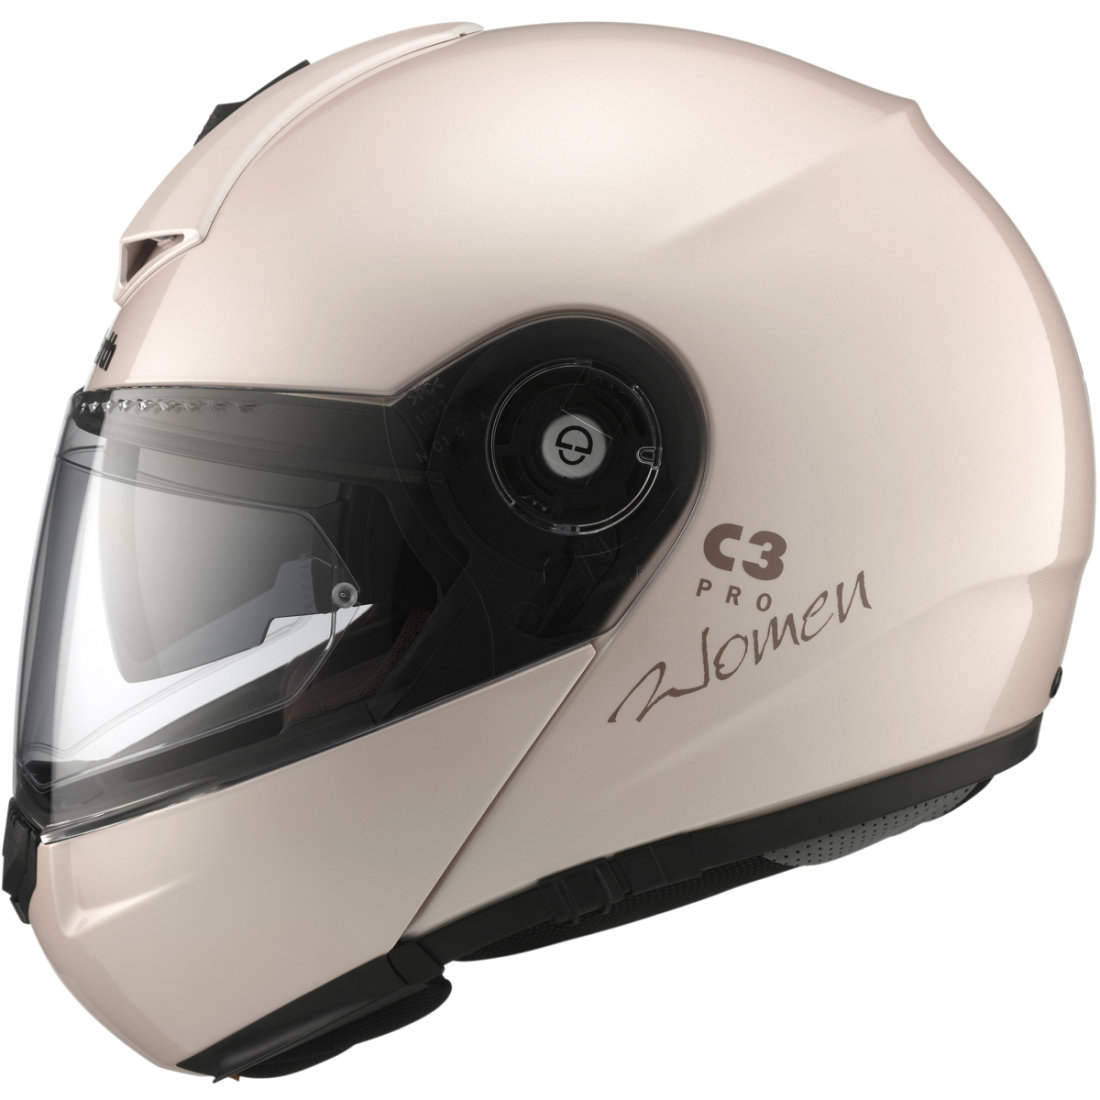 casque schuberth c3 pro lady pearl pink motocard. Black Bedroom Furniture Sets. Home Design Ideas